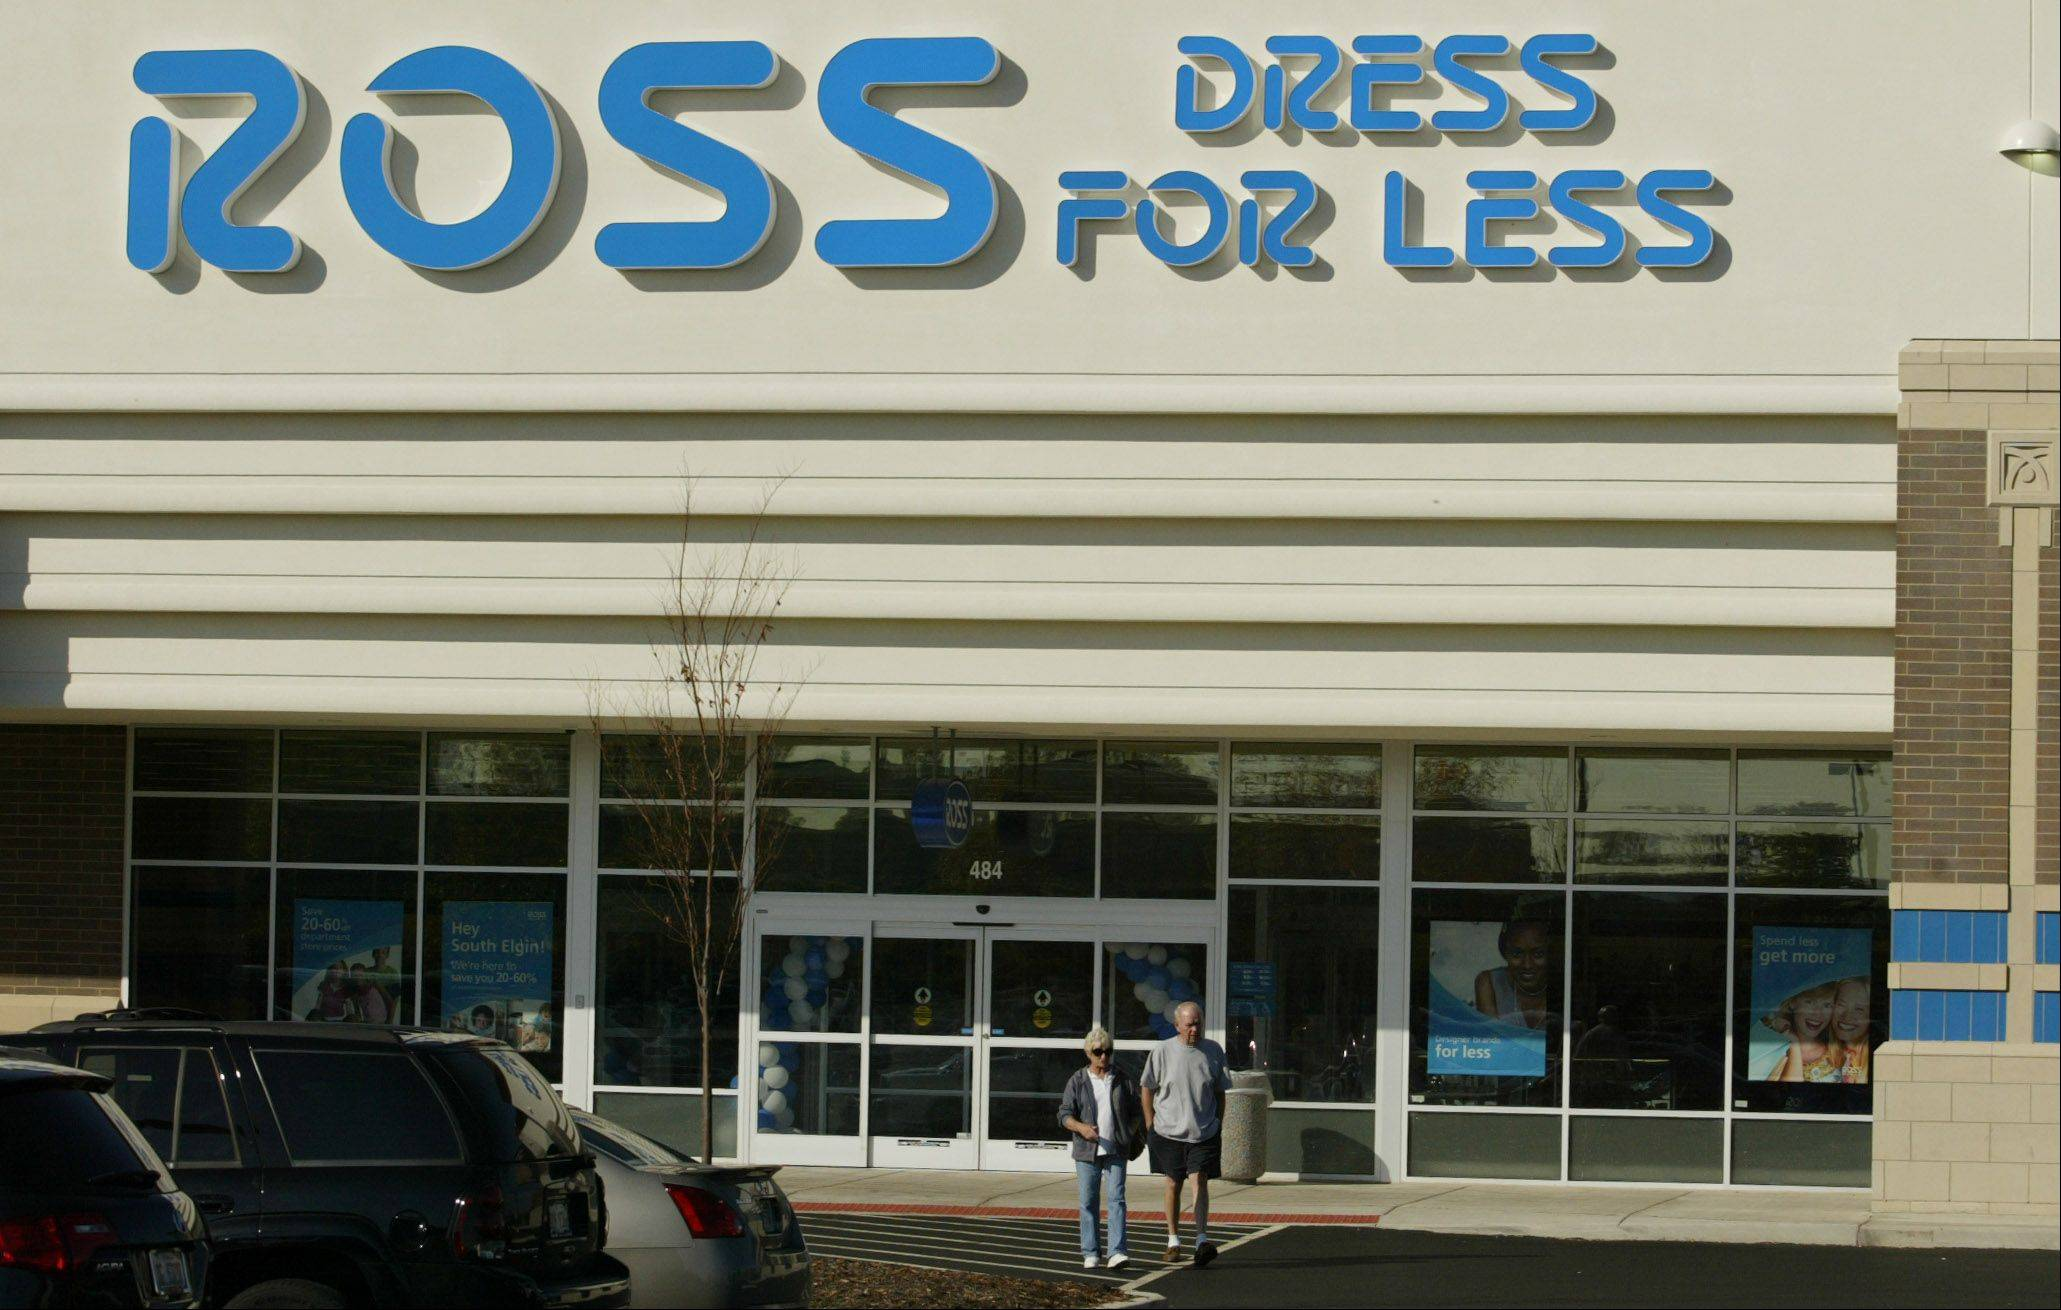 Ross Dress for Less stores are now open in the Fox Valley, including one in South Elgin on Randall Road.